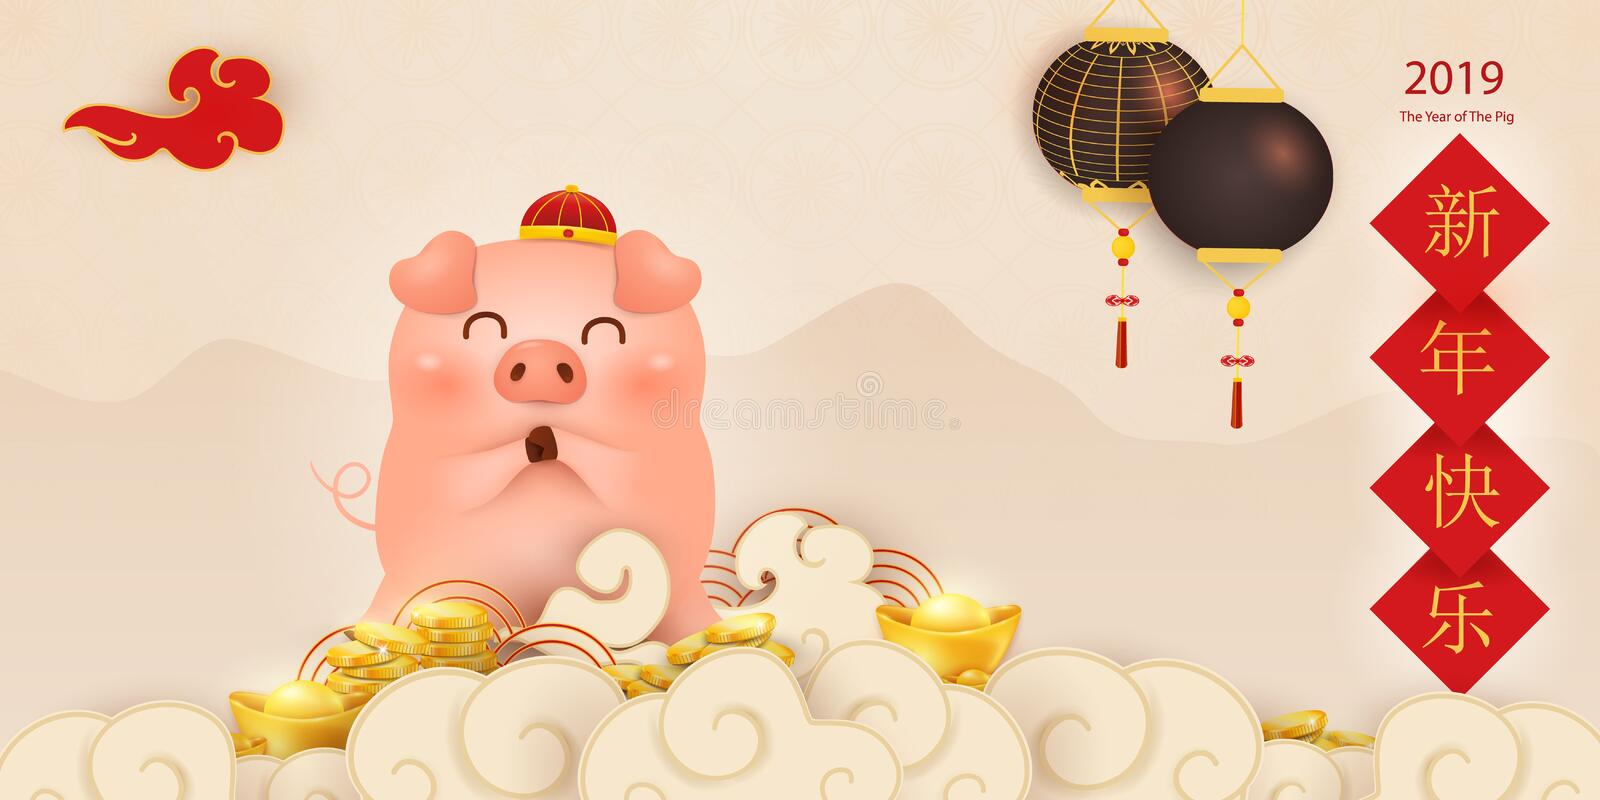 Happy Chinese New year of the pig. Cute cartoon Pig character design with chinese gold ingot for card, flyers, invitation, posters royalty free illustration